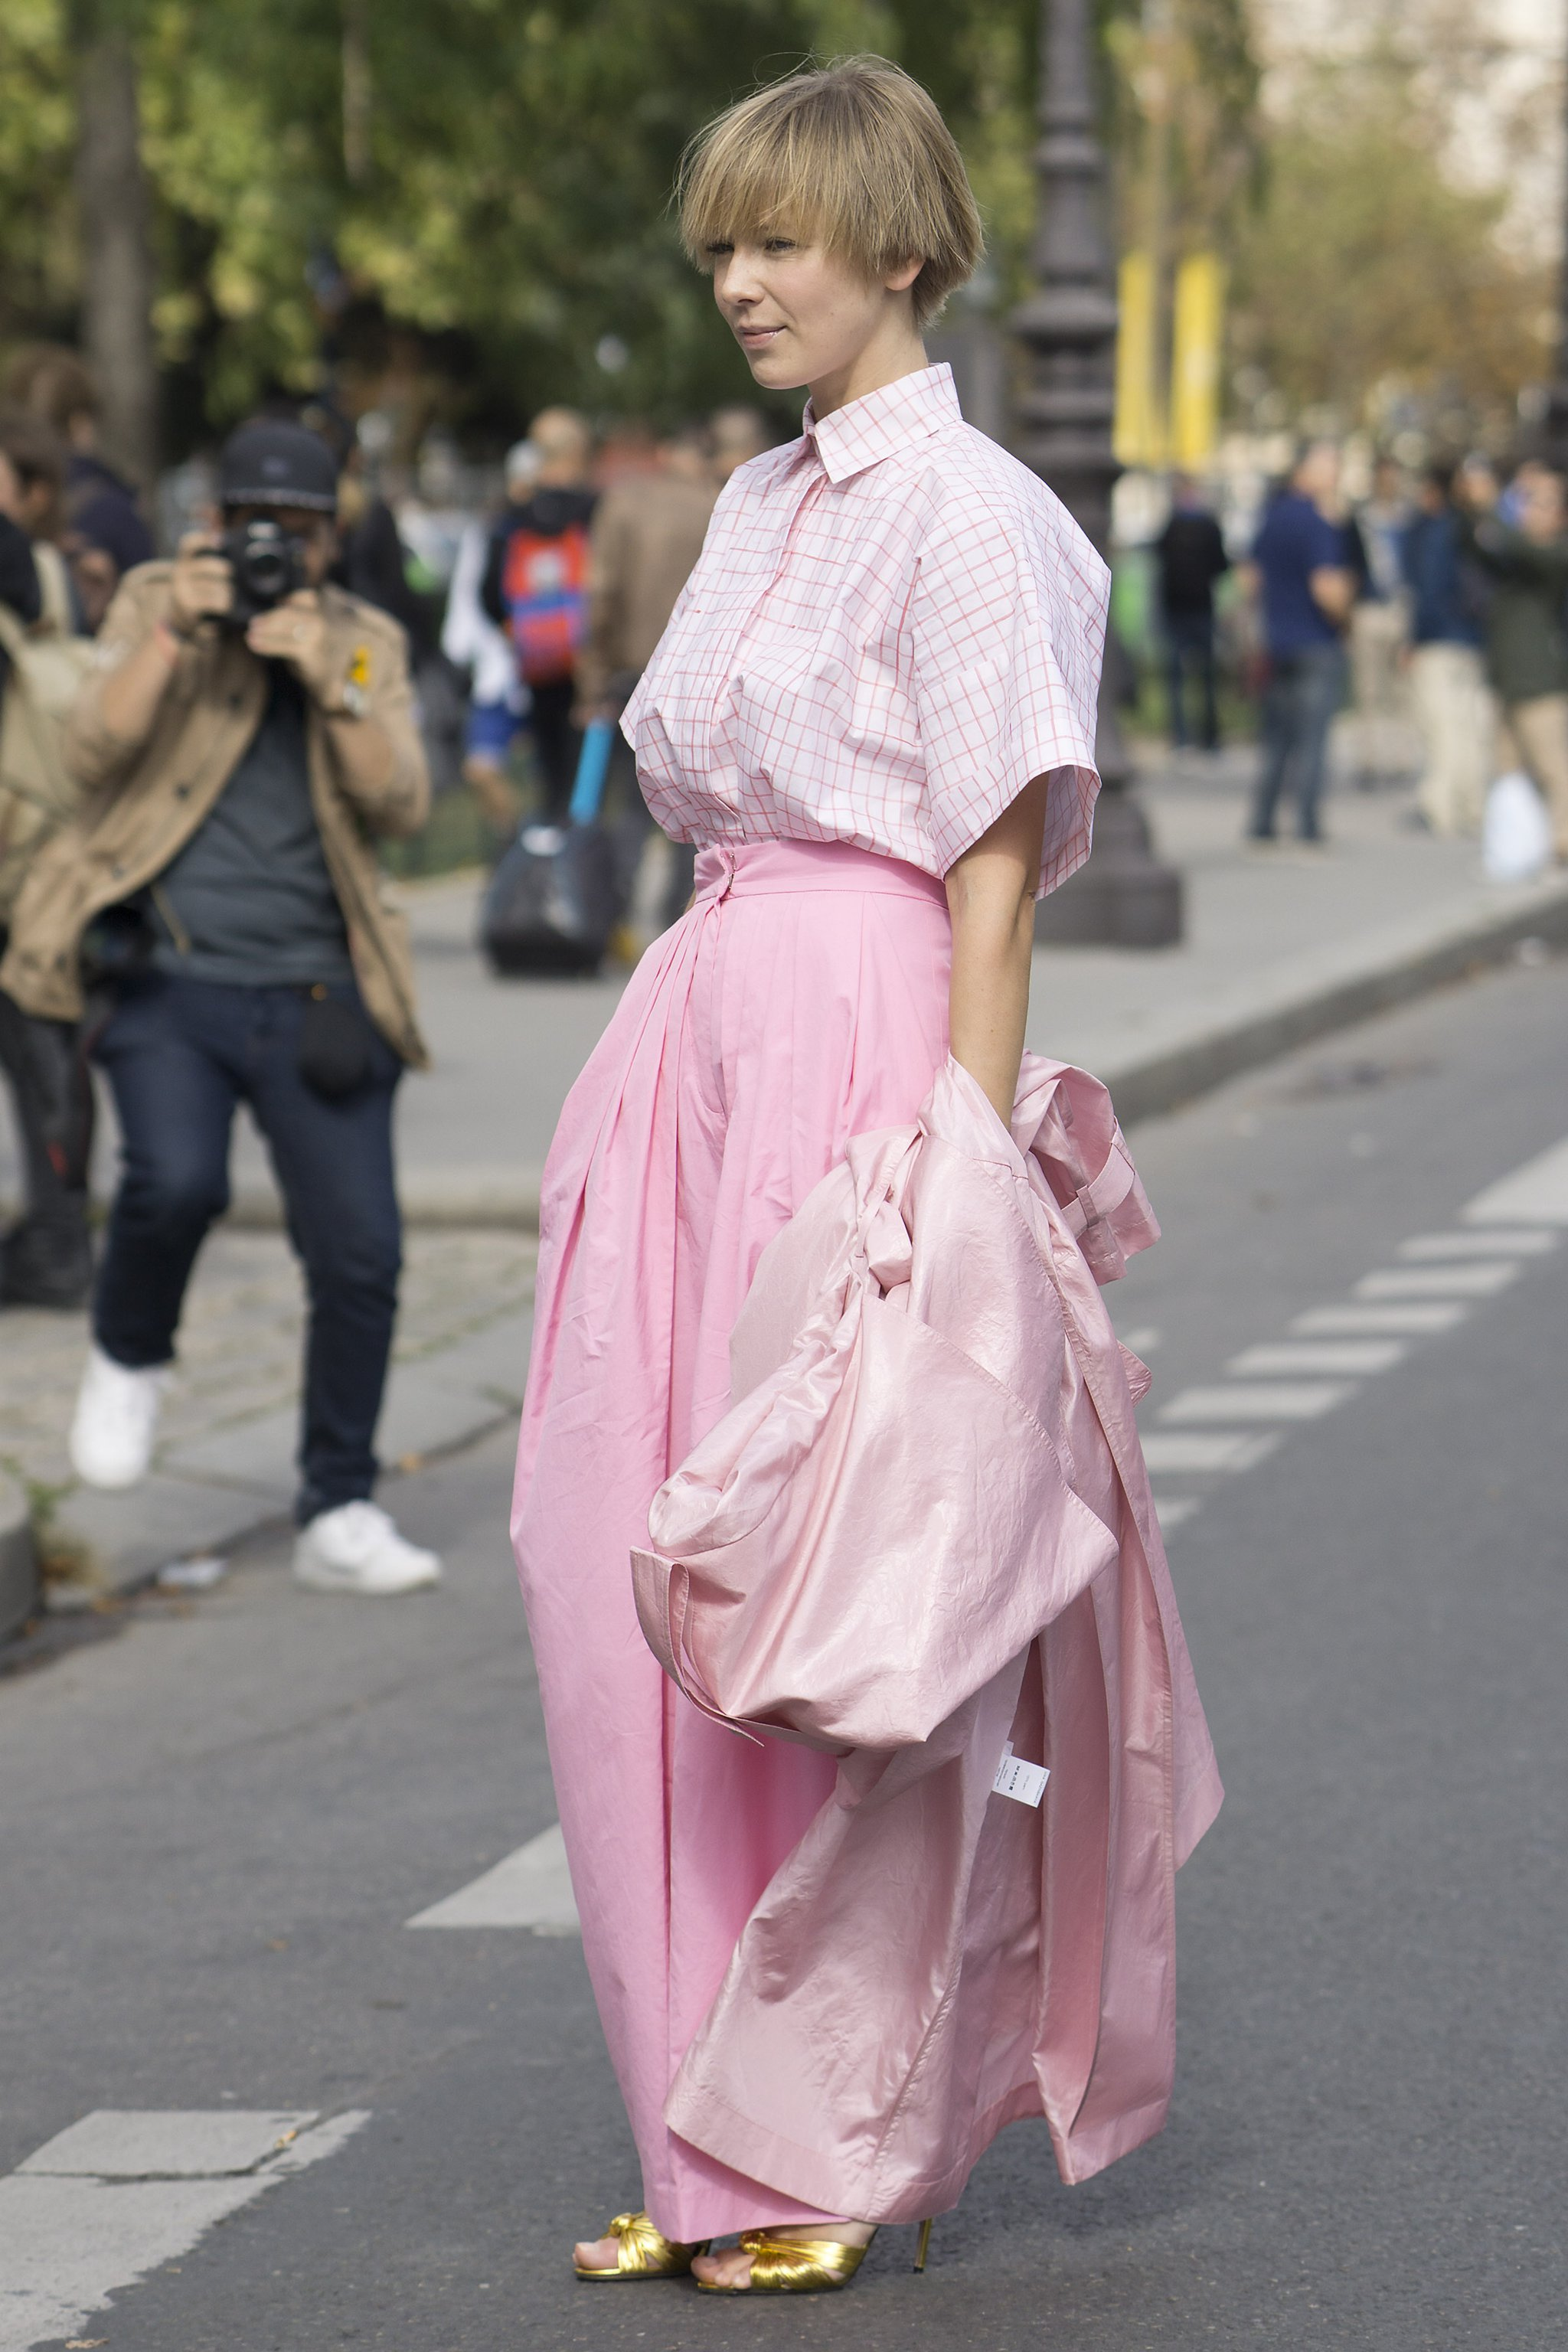 Steal Her Style: Think Pink